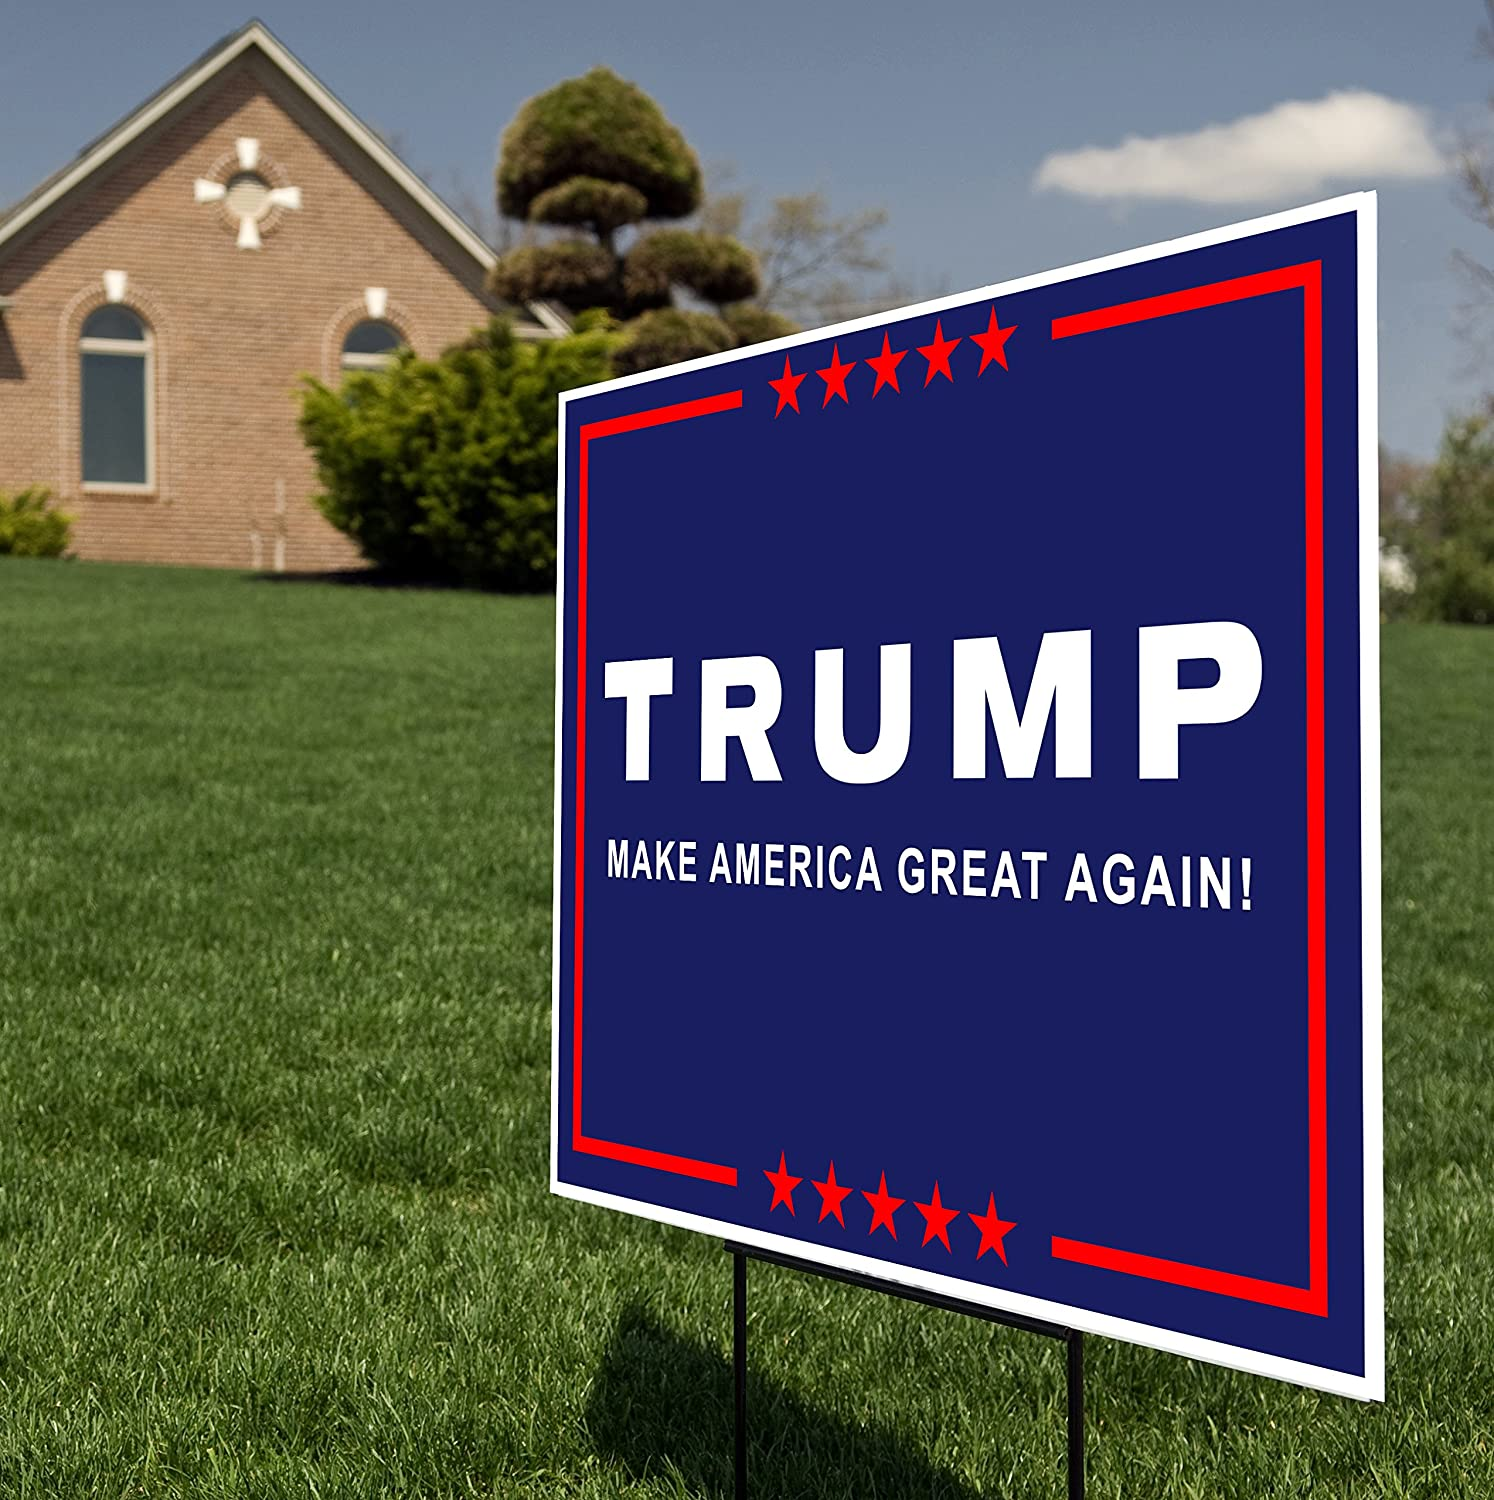 amazon com donald trump for president 2016 yard sign lawn signage rh amazon com Wiring-Diagram Flashing Sign Wiring-Diagram Flashing Sign